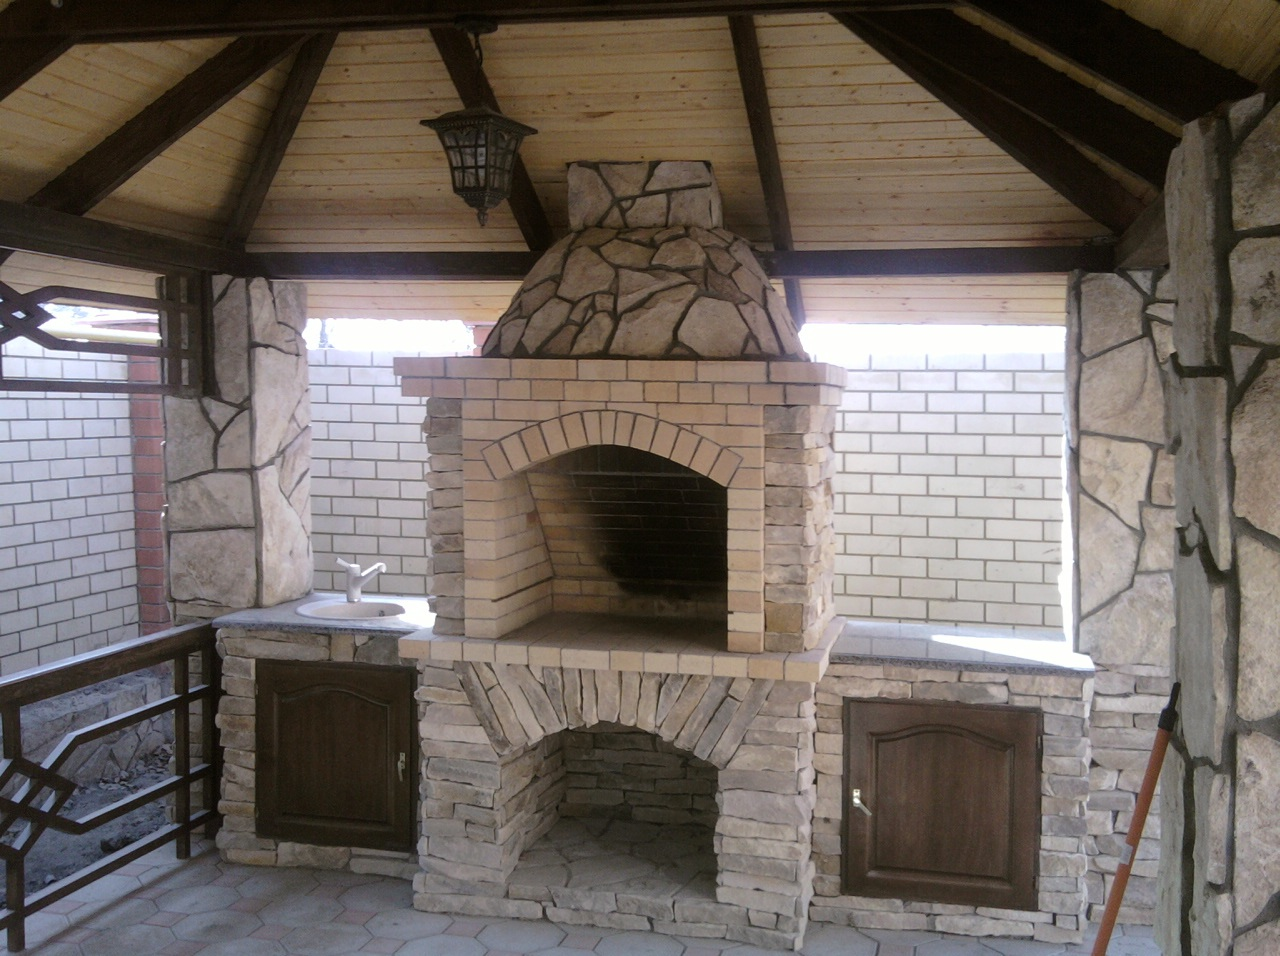 Smart placement gazebo with fireplace ideas architecture for Plans for gazebo with fireplace